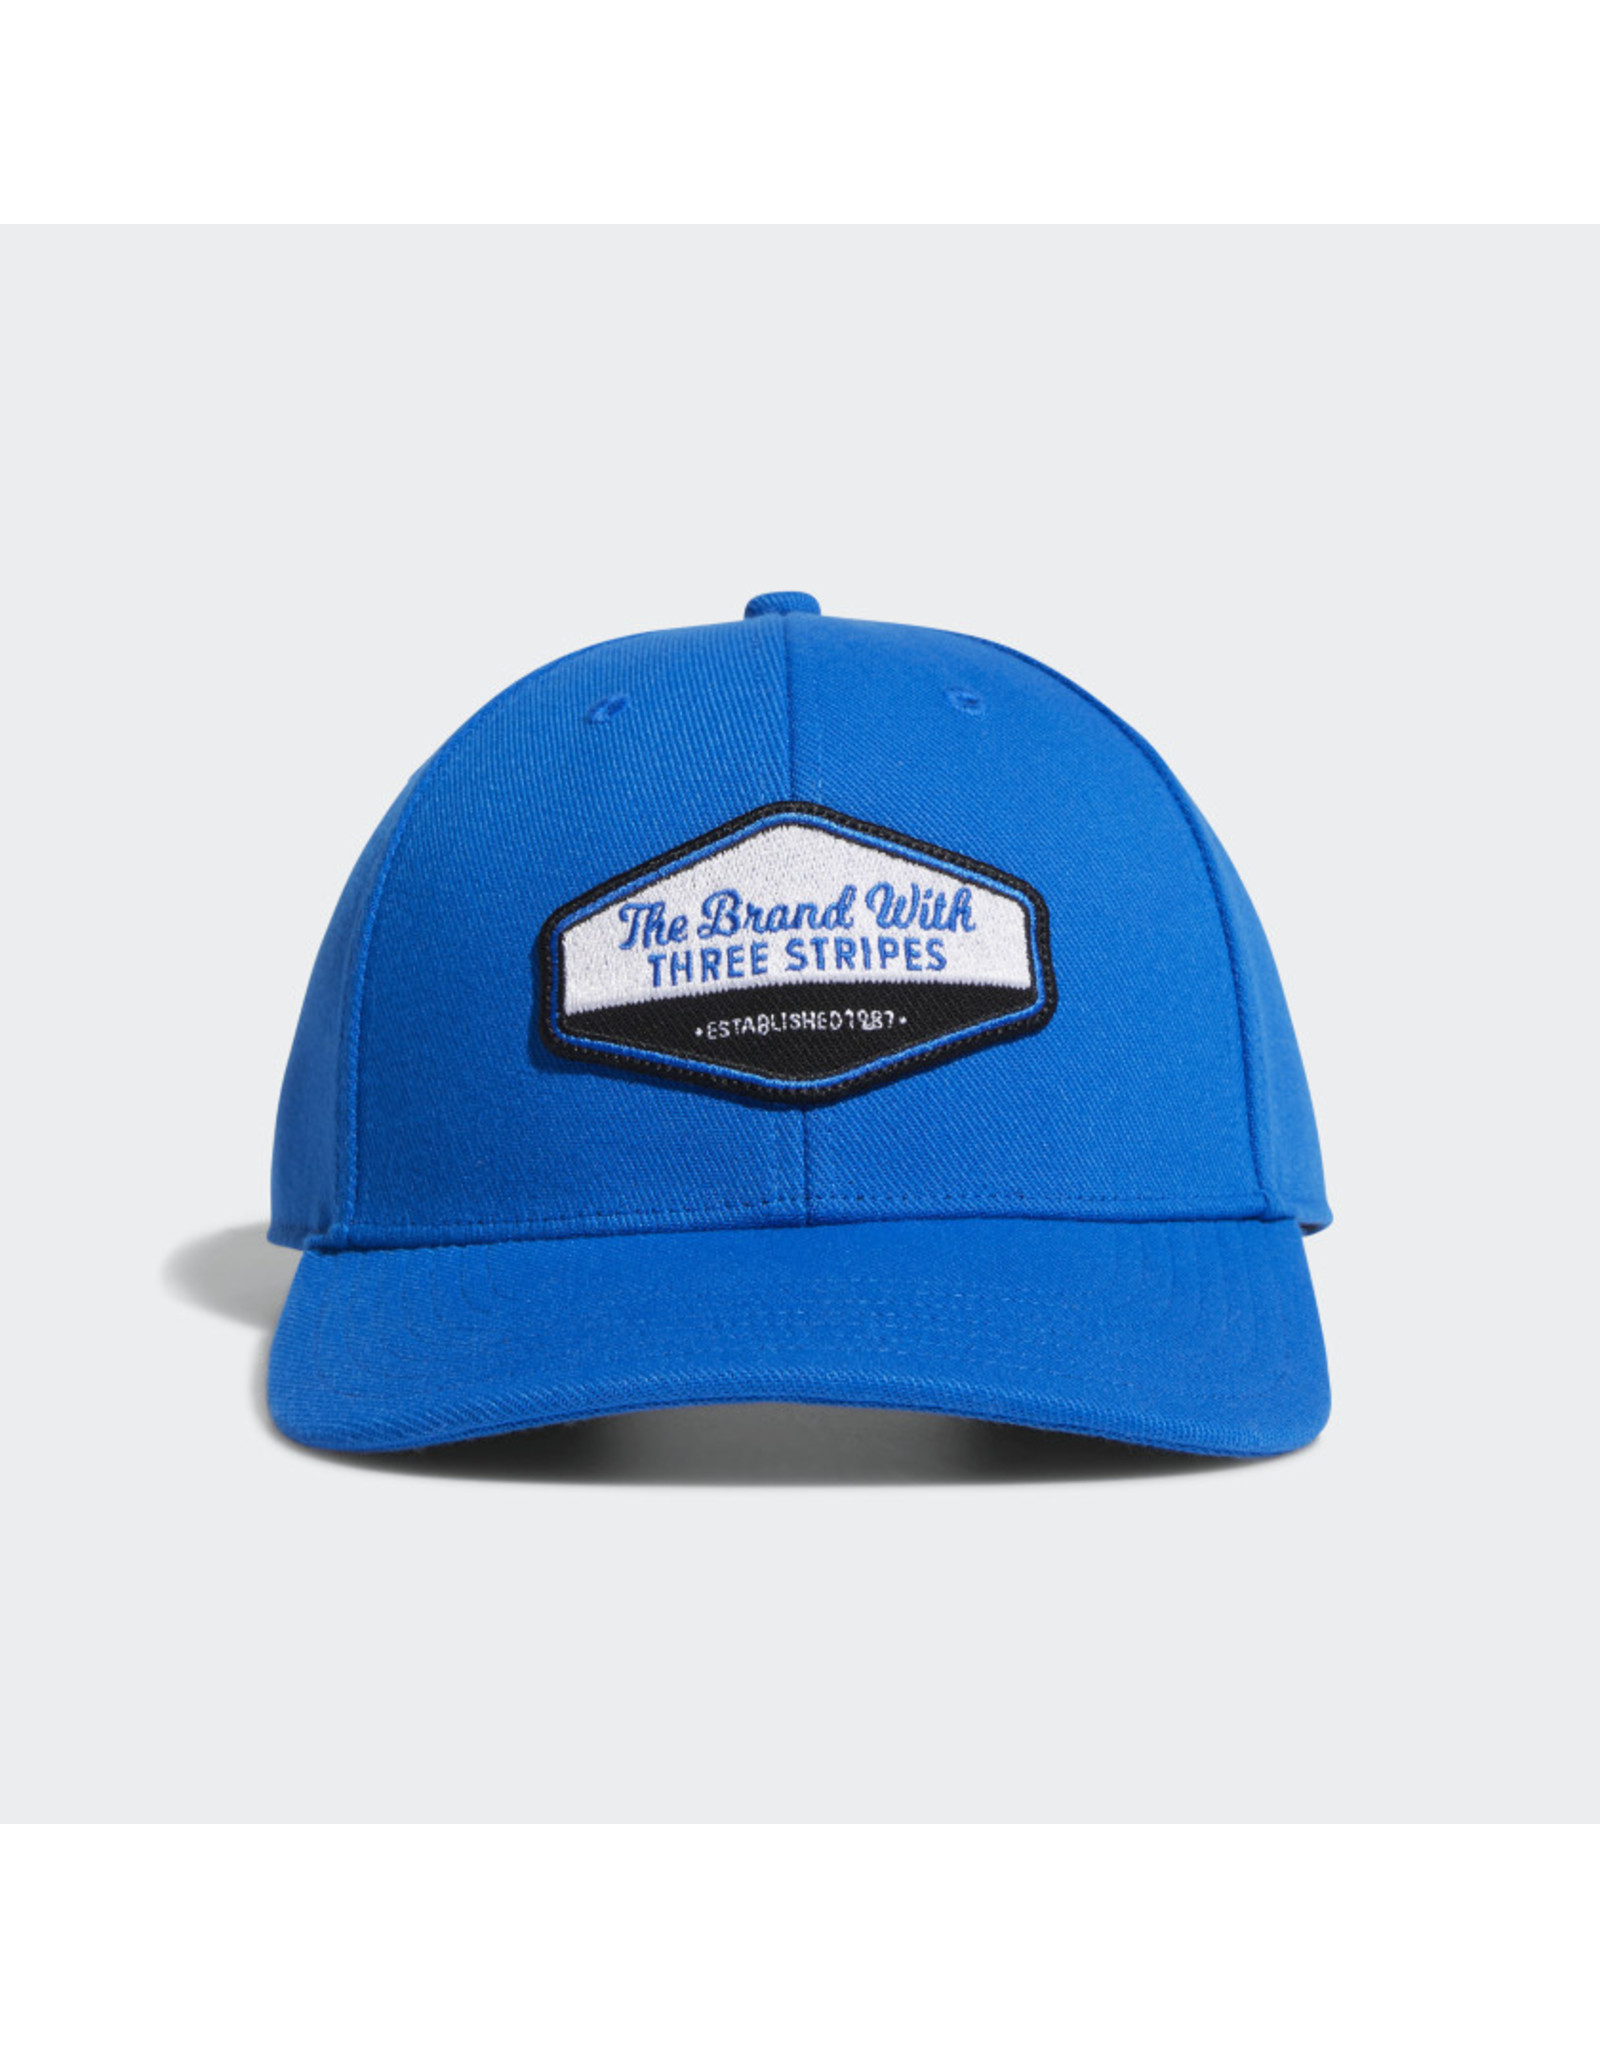 Adidas Adi Statement Hat